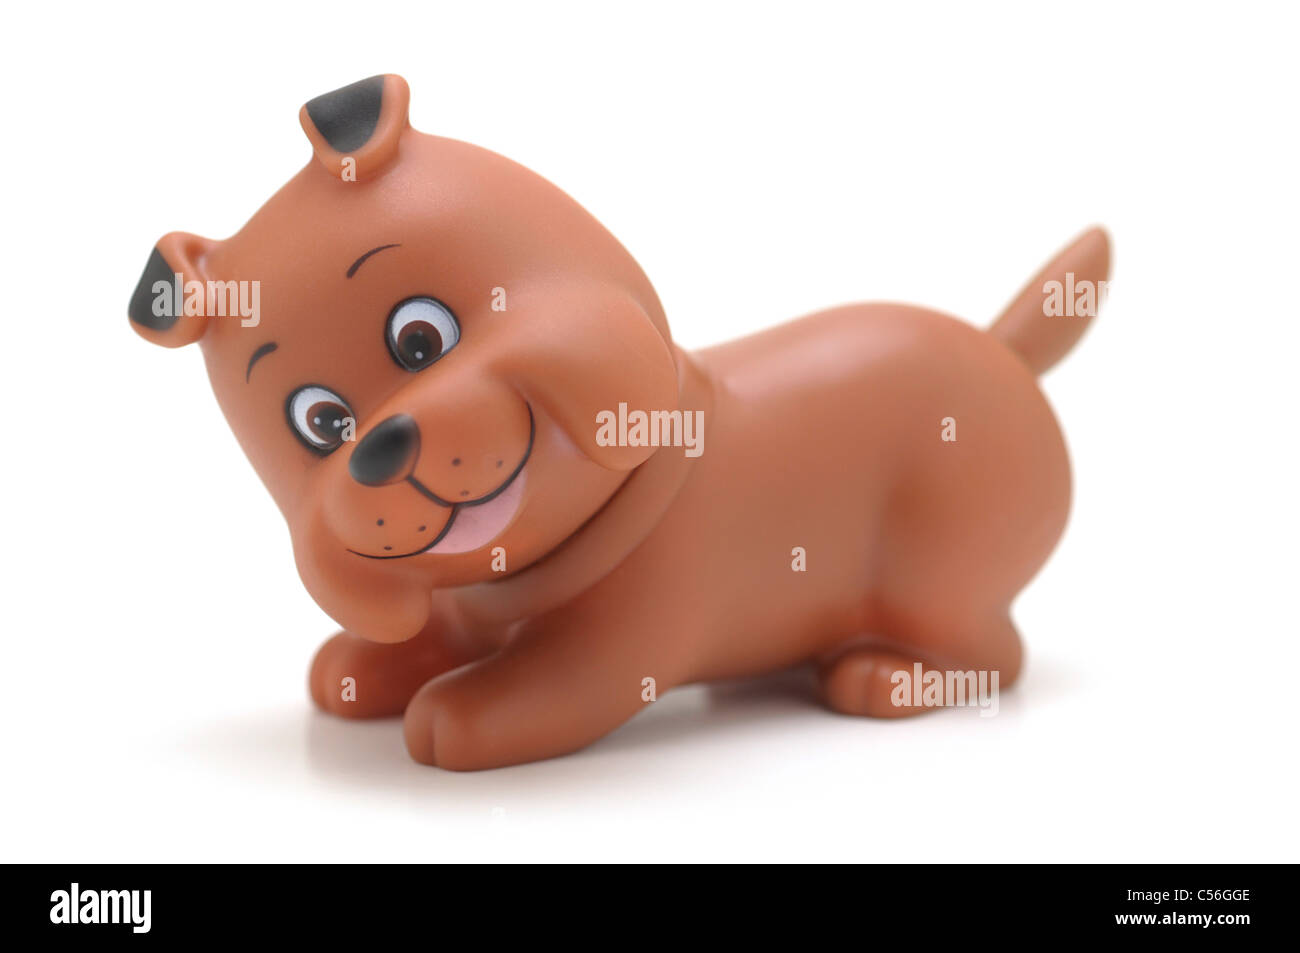 Toy Dog Puppy, Pet Photo Stock